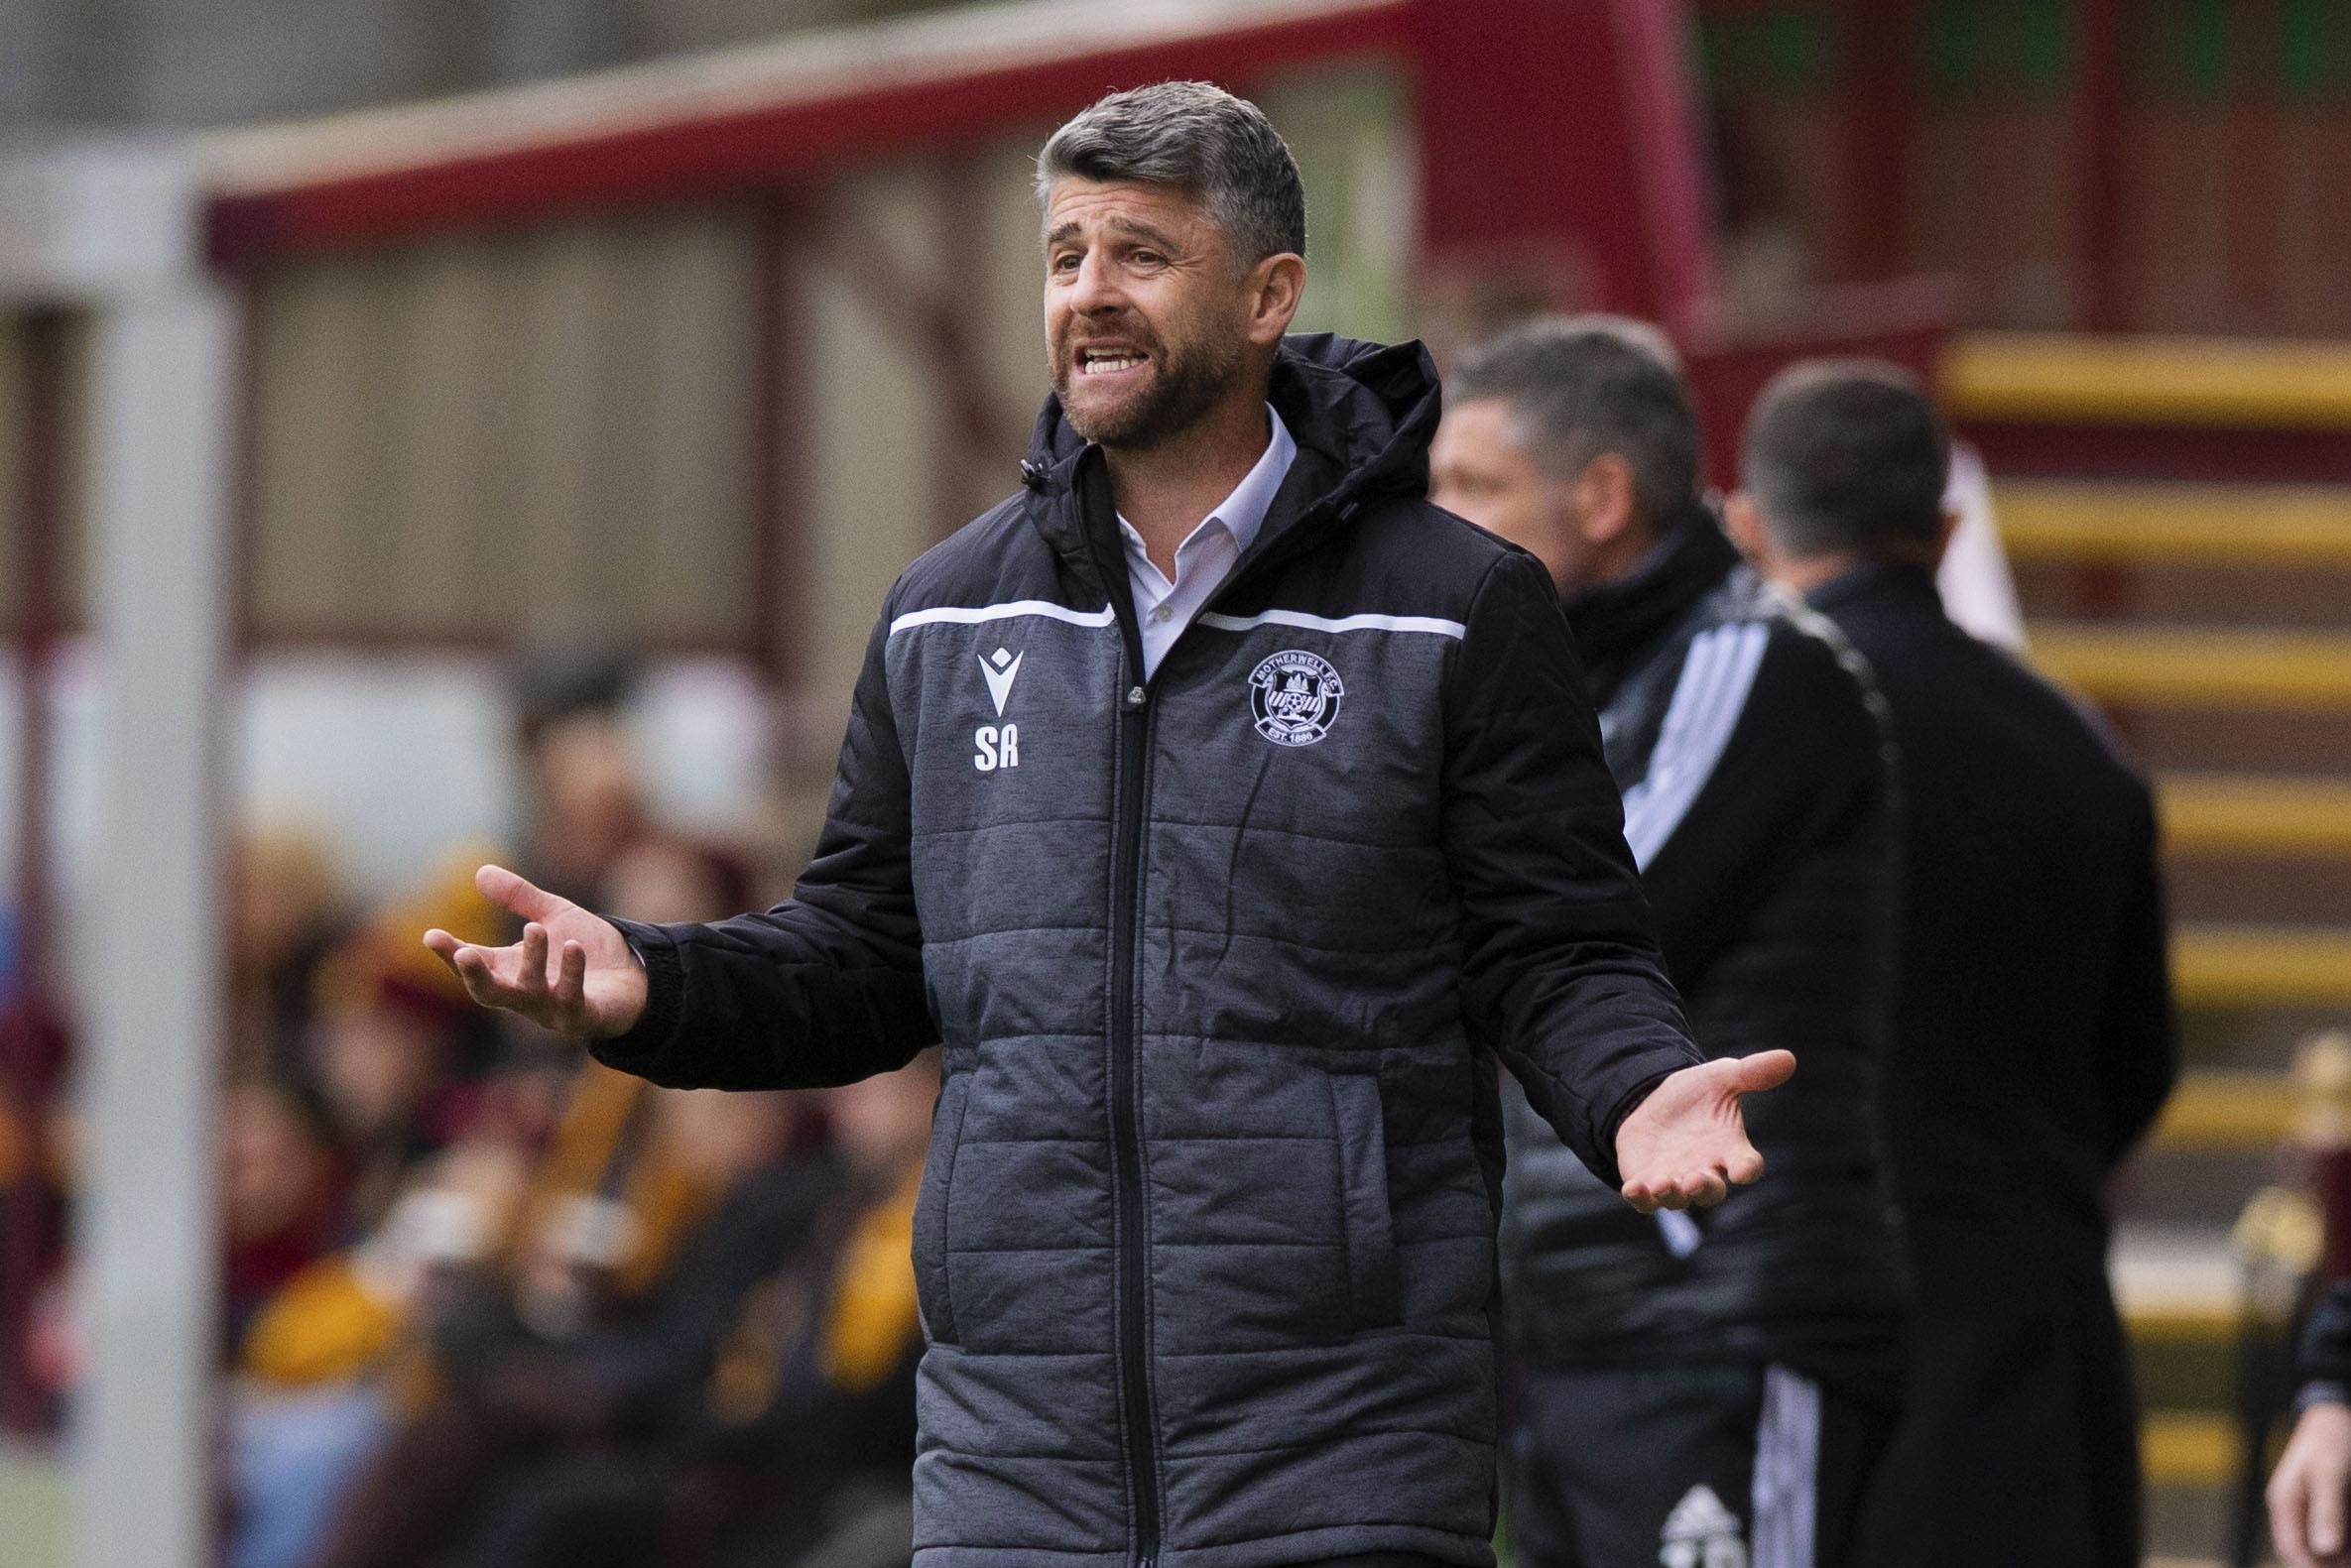 Motherwell stave off 10-man Kilmarnock to jump up to third in Ladbrokes Premiership